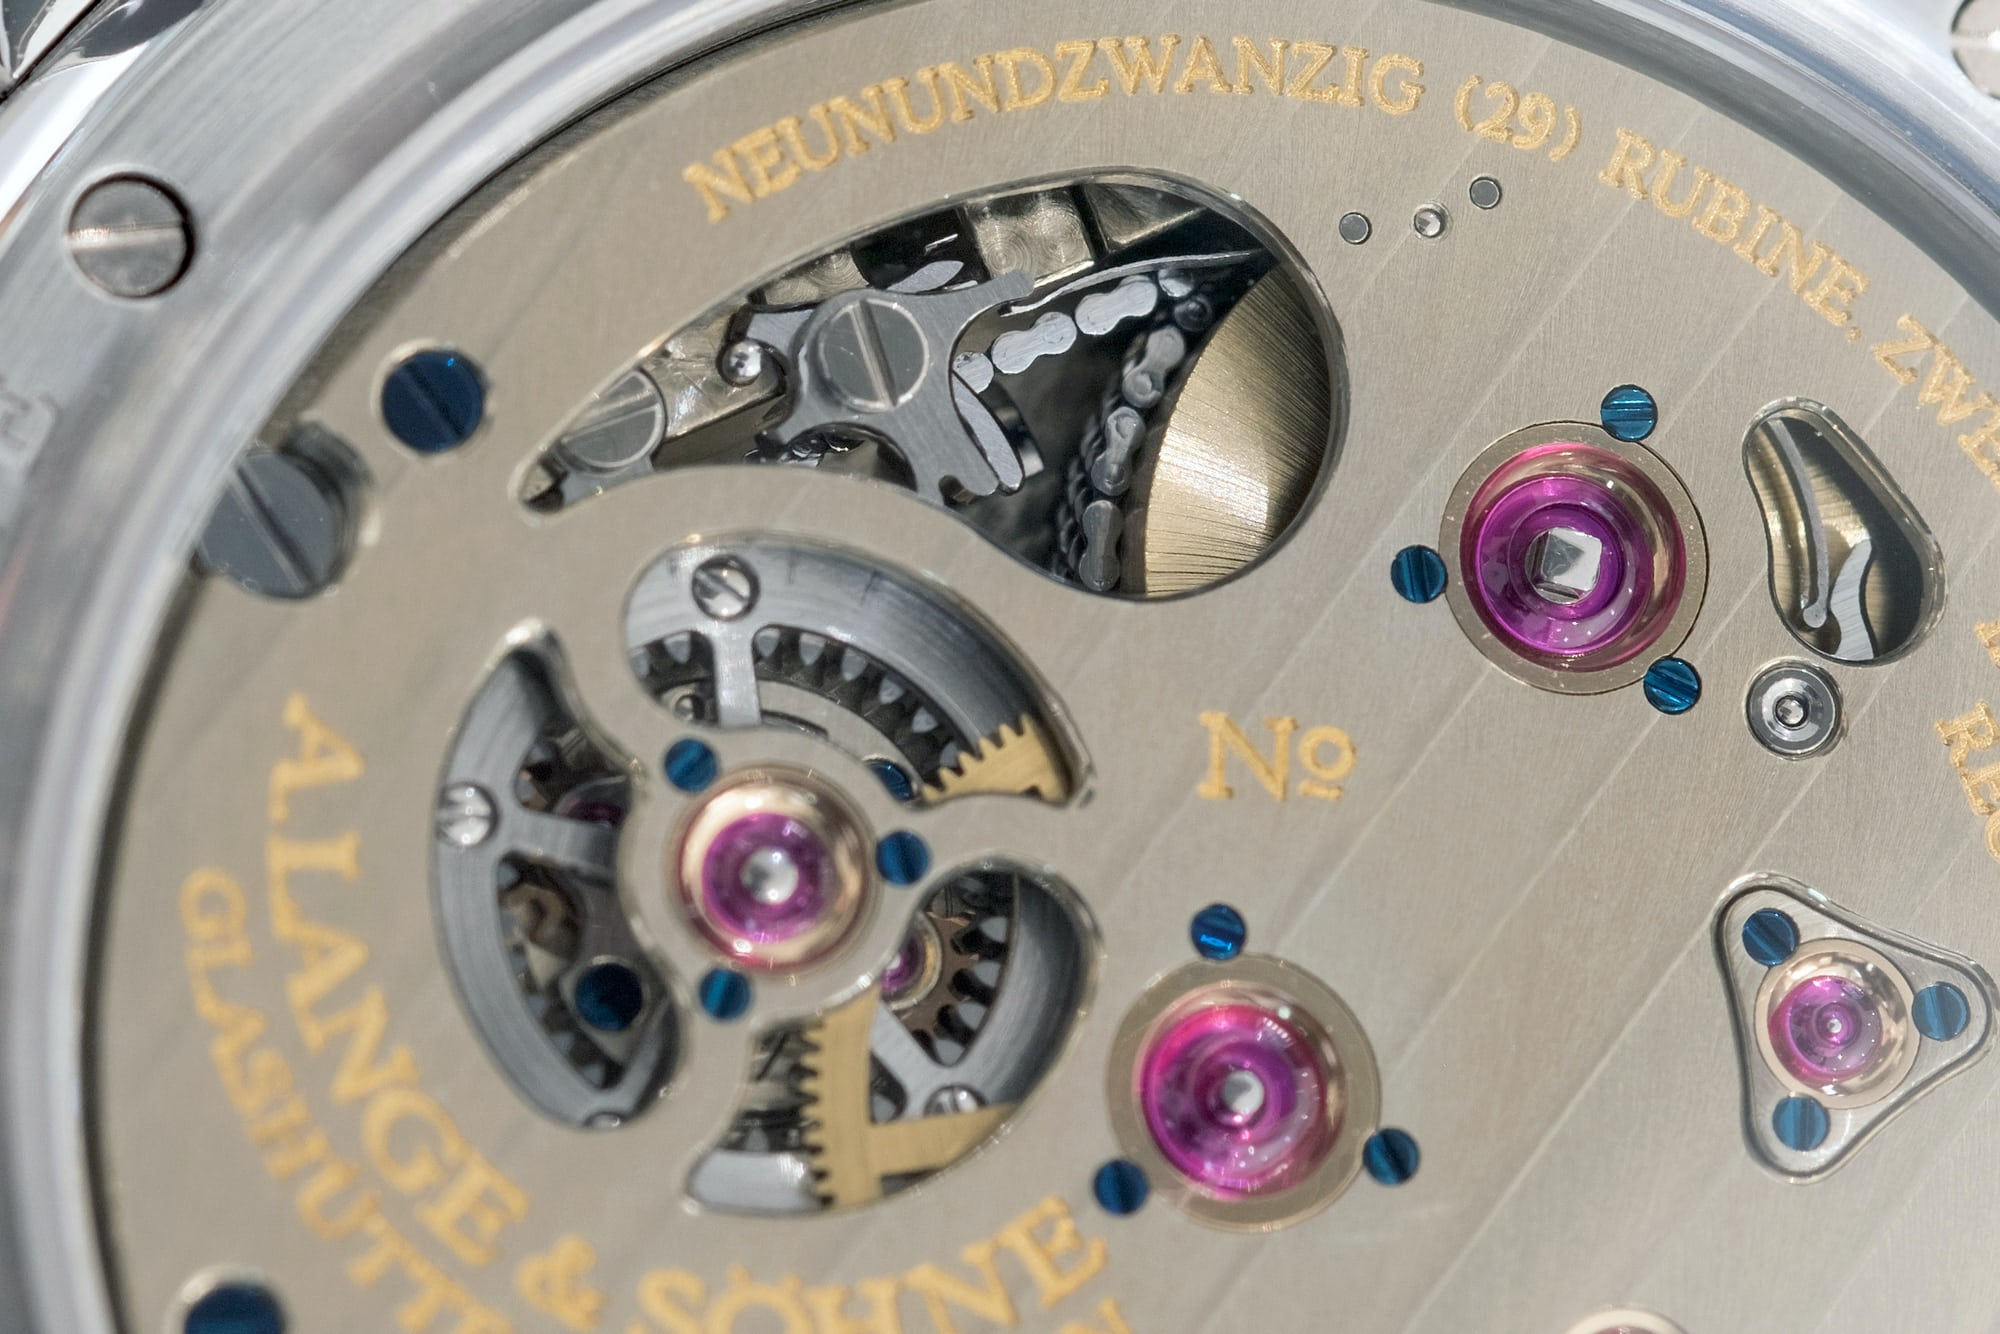 Just Because: All Five A. Lange & Söhne 'Pour le Mérite' Watches In The Same Place, At The Same Time Just Because: All Five A. Lange & Söhne 'Pour le Mérite' Watches In The Same Place, At The Same Time plm 20